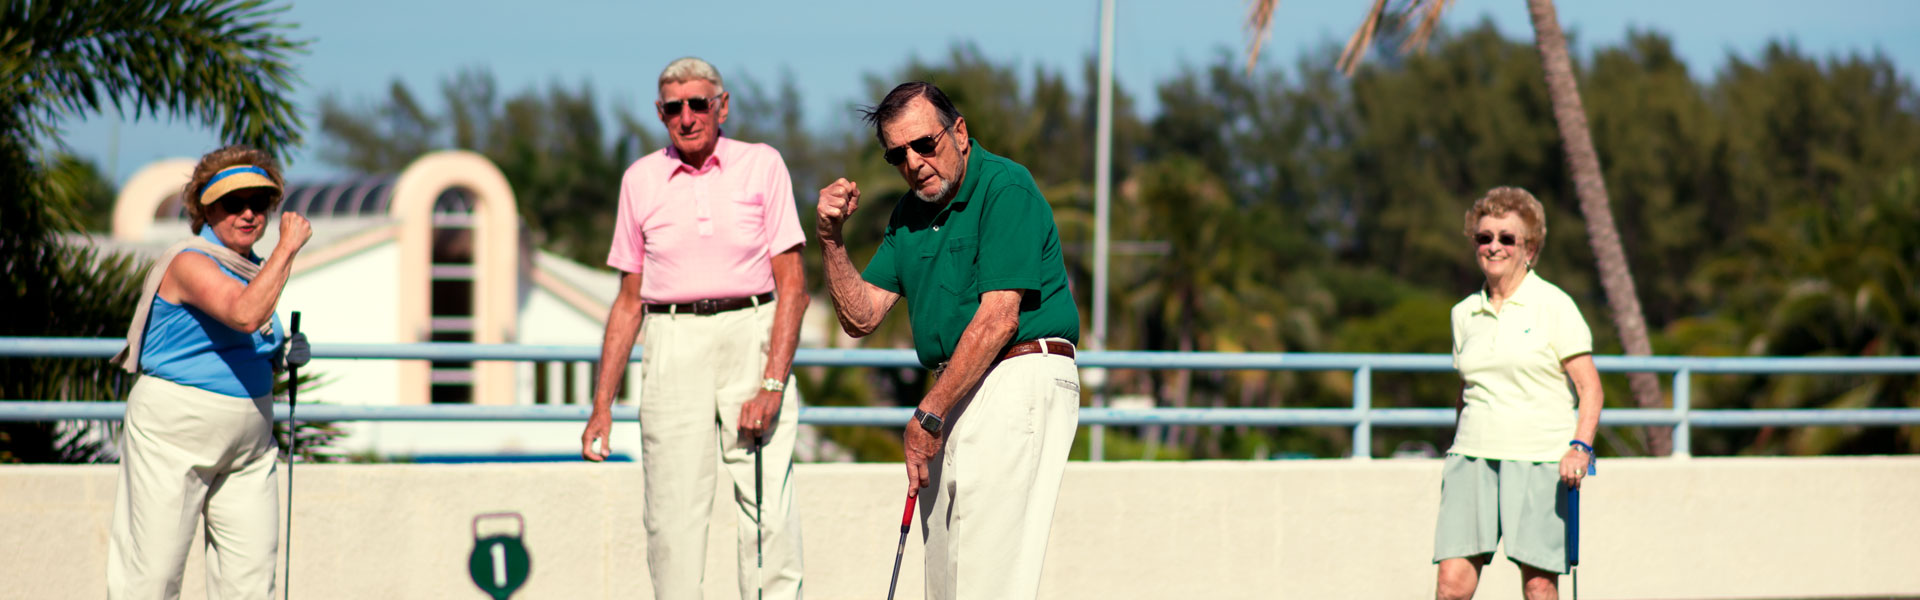 A group of residents playing a round of golf at their retirement community